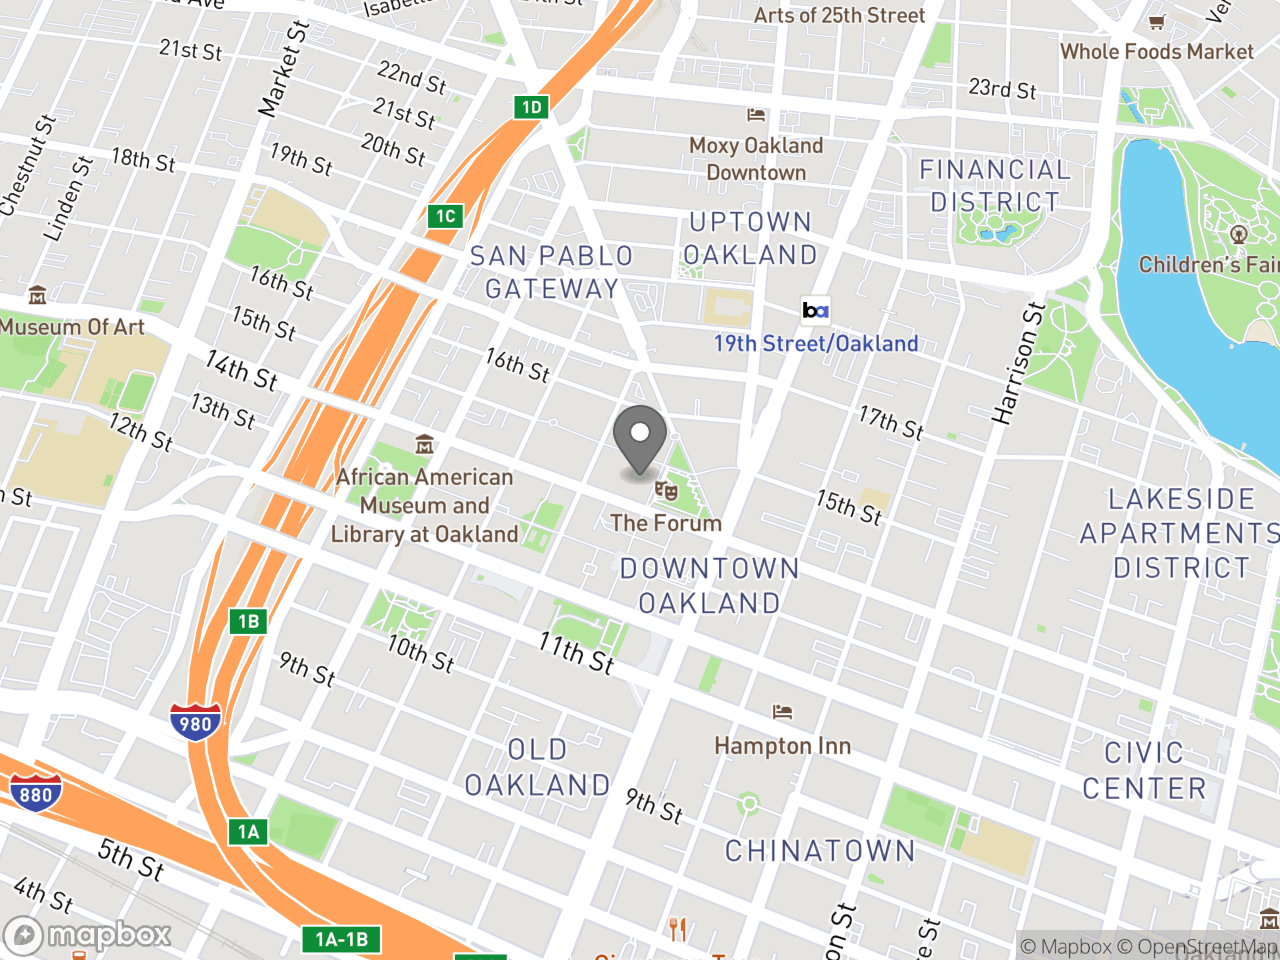 Map location for Walking Tour - City Center, located at 1 Frank H Ogawa Plaza in Oakland, CA 94612